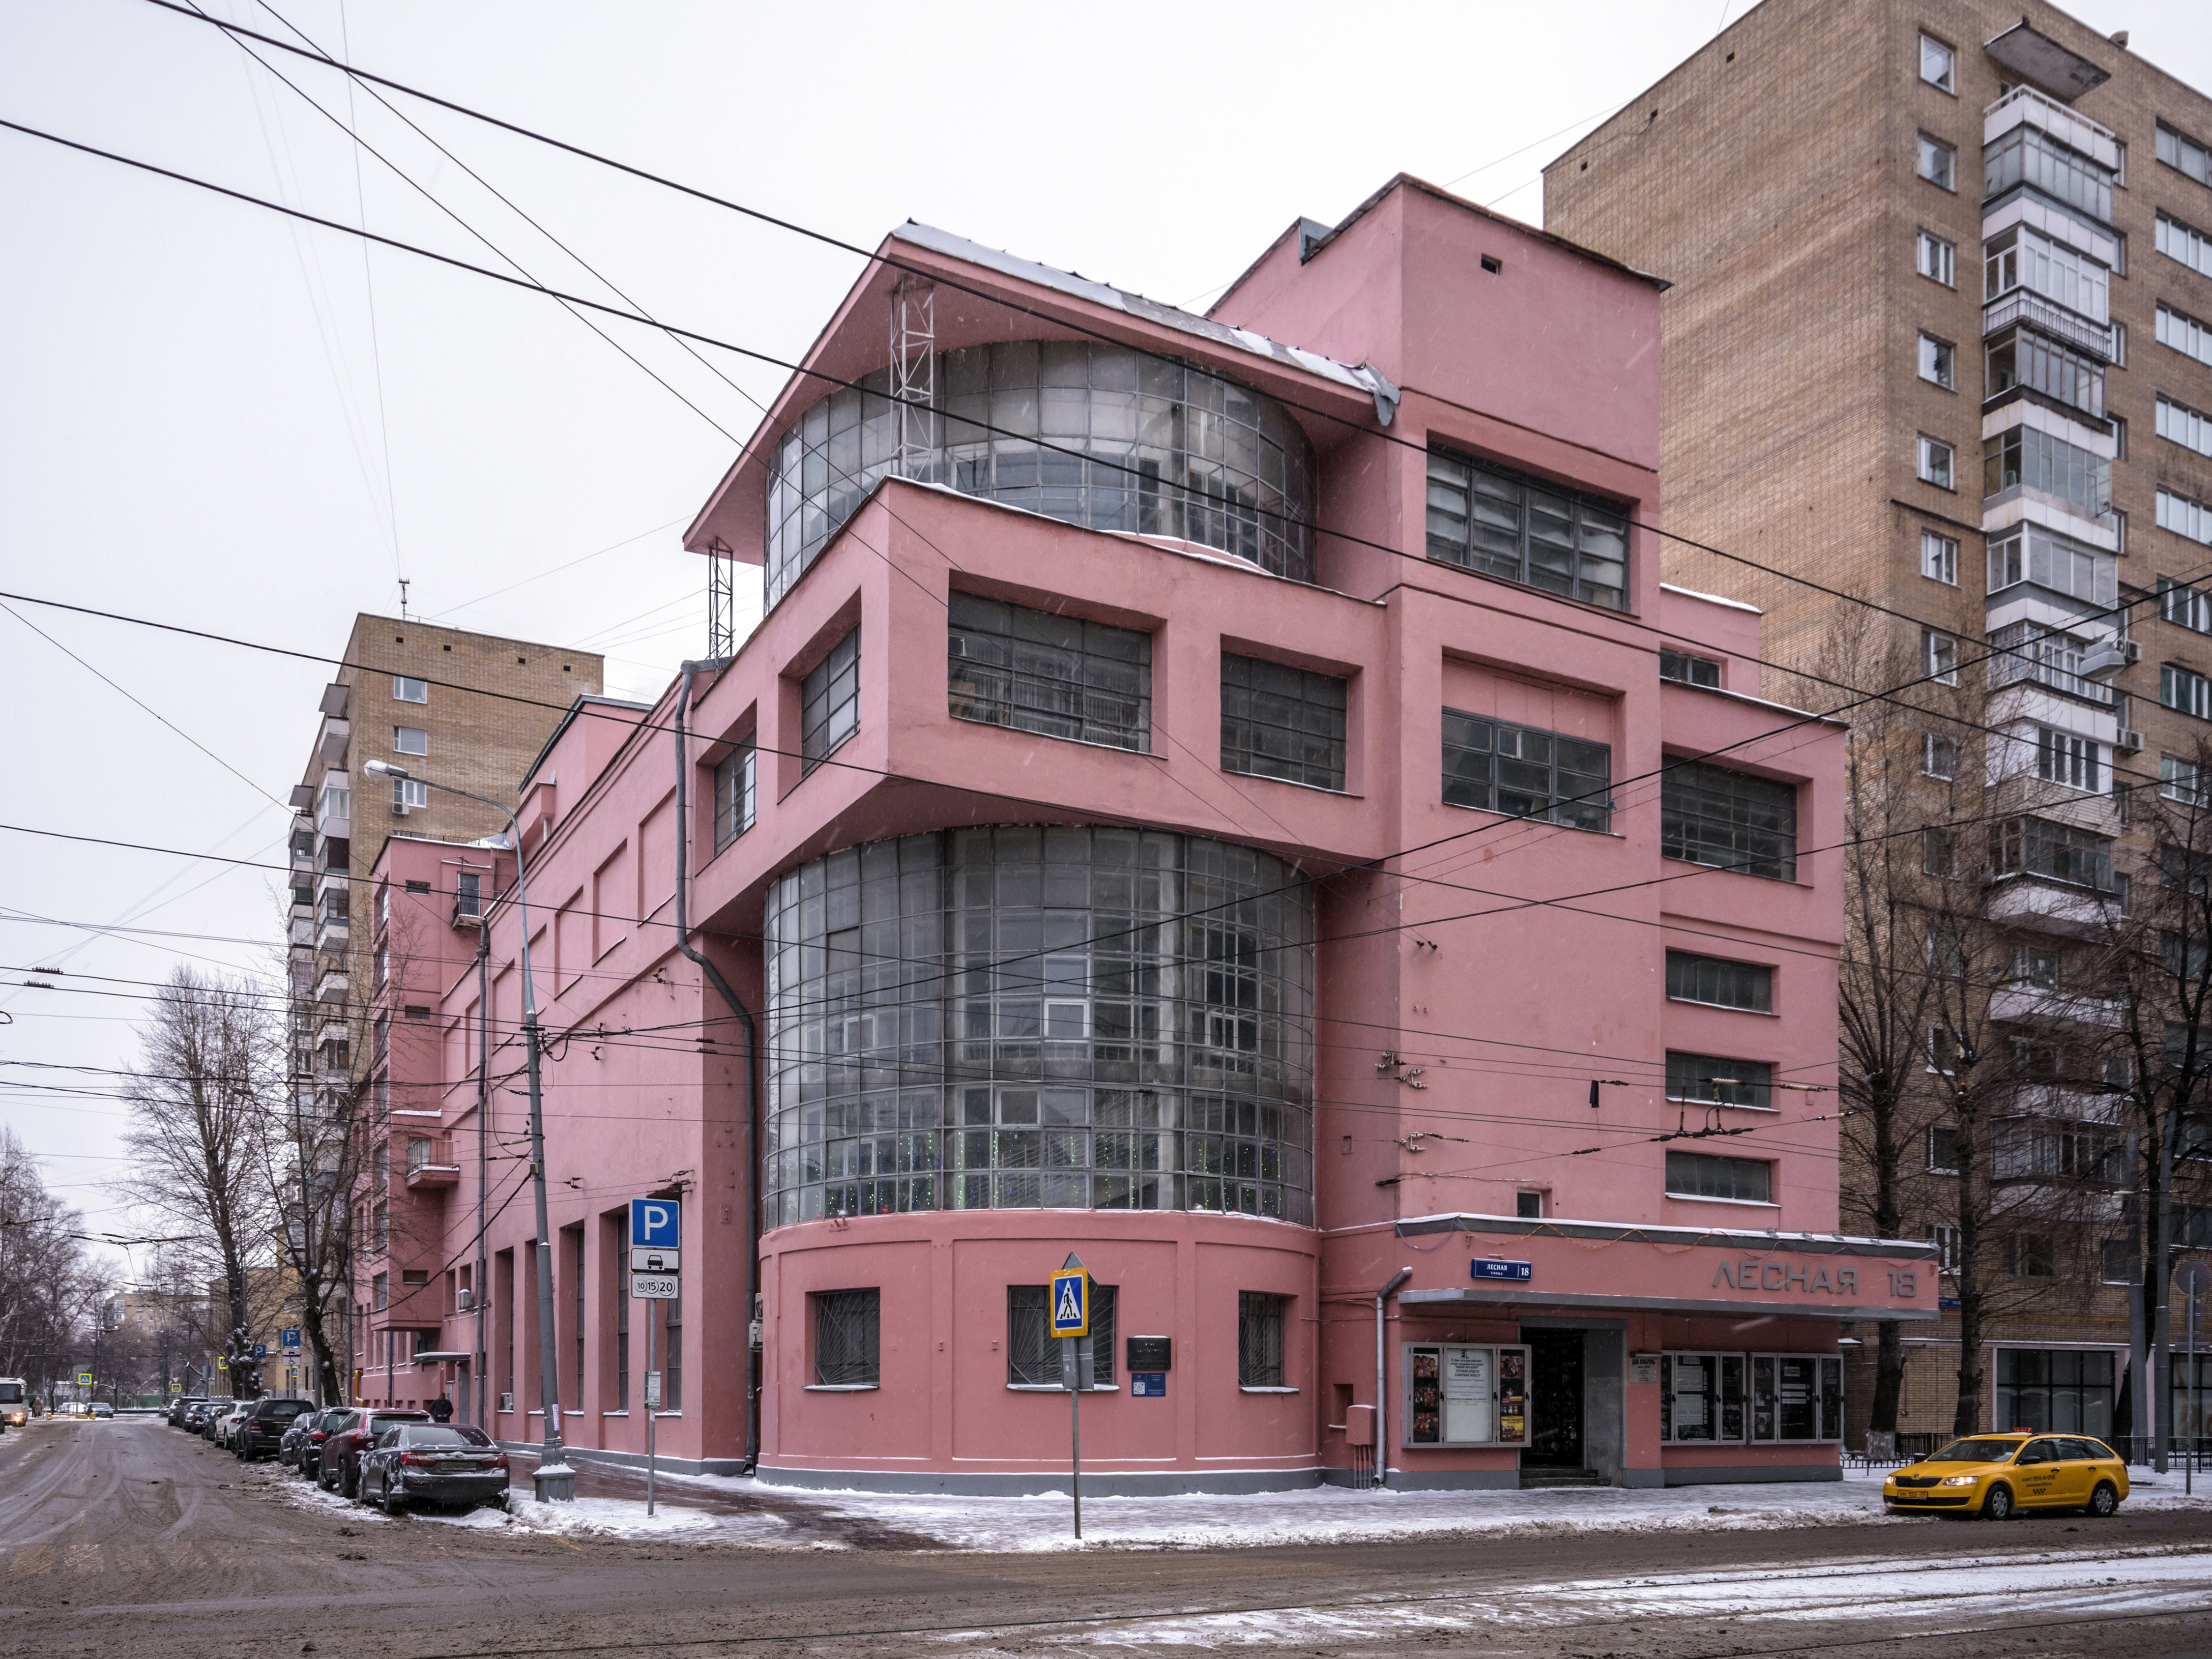 One of the finest examples of Soviet constructivist architecture - the Zuev Workers' Club, Moscow, designed by Ilya Golosov in 1926 [4500 × 3375]